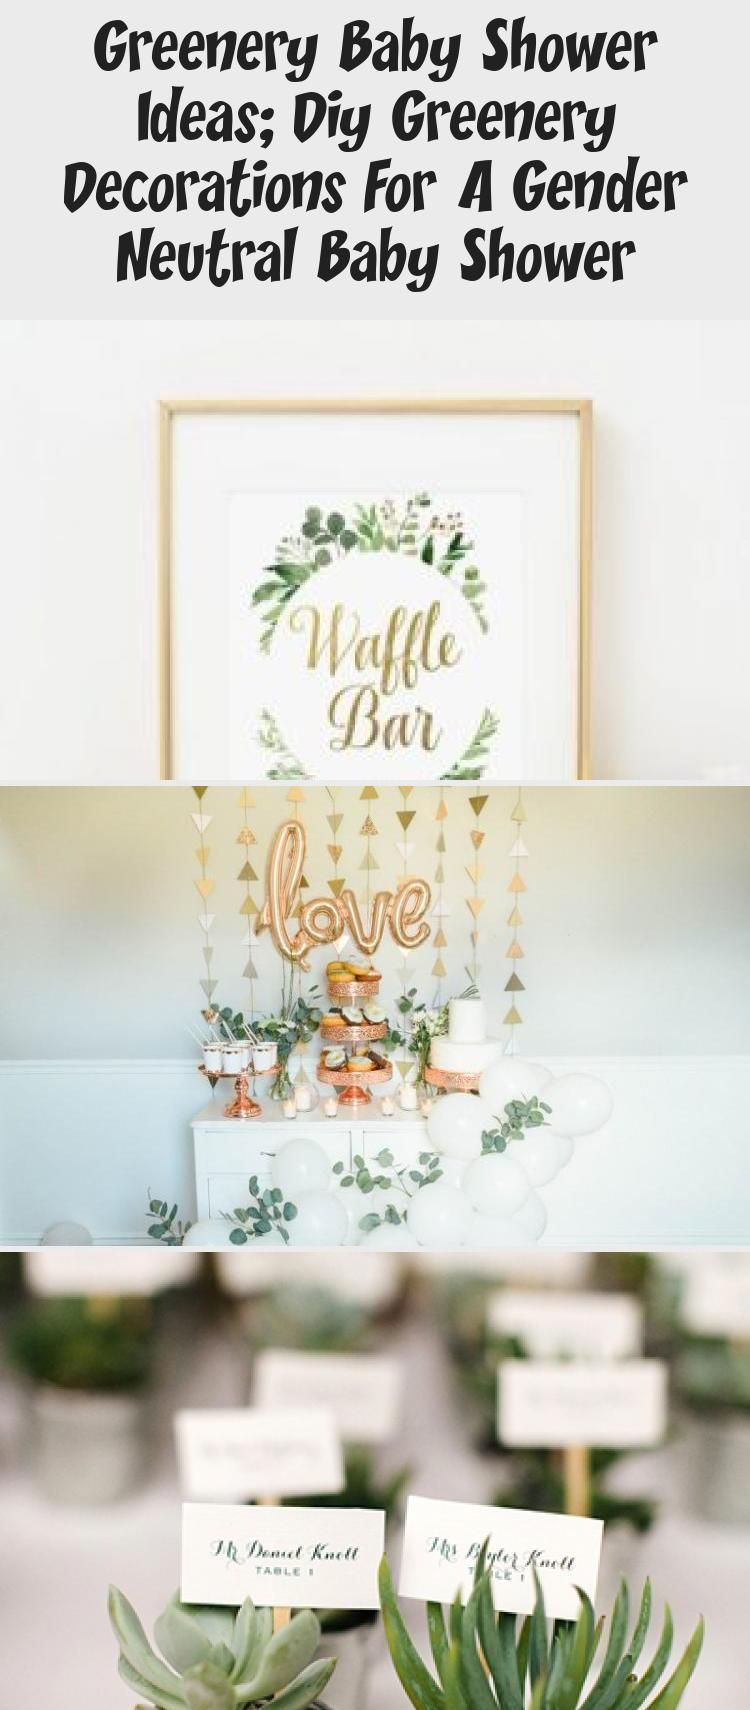 Ideas For Baby Shower In The Green Green Diy Decorations For A